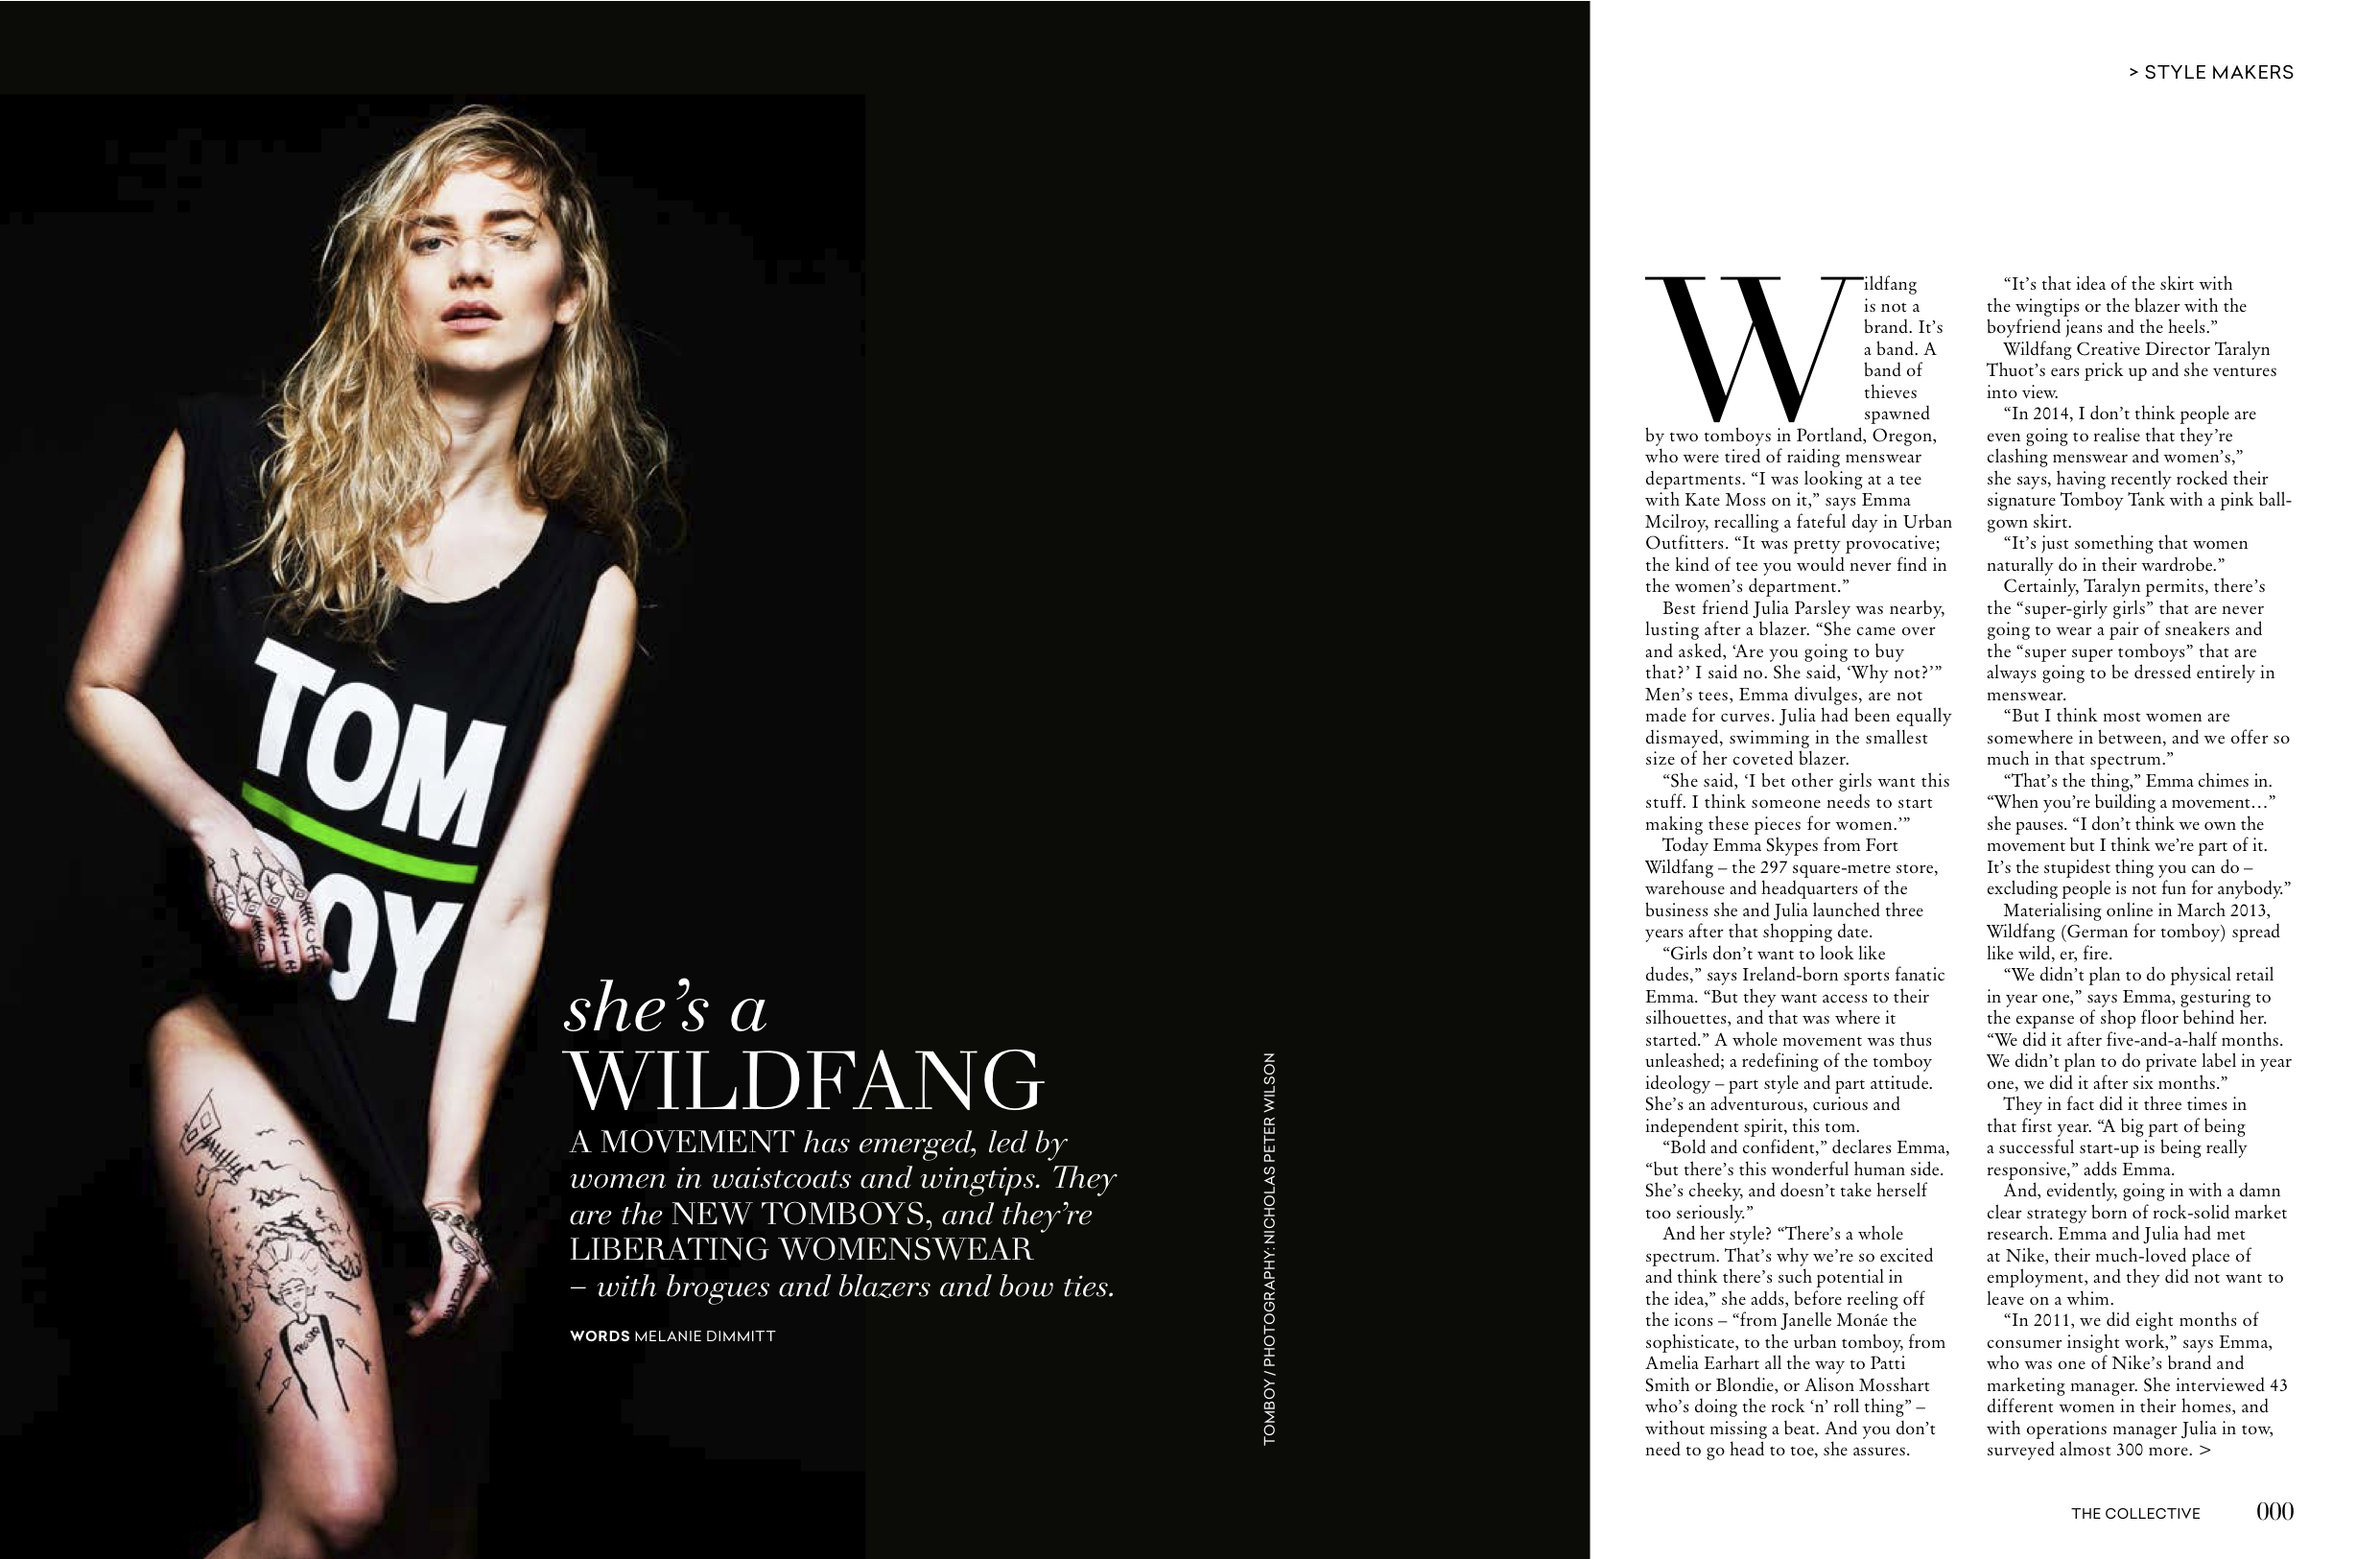 The Collective - Wildfang1